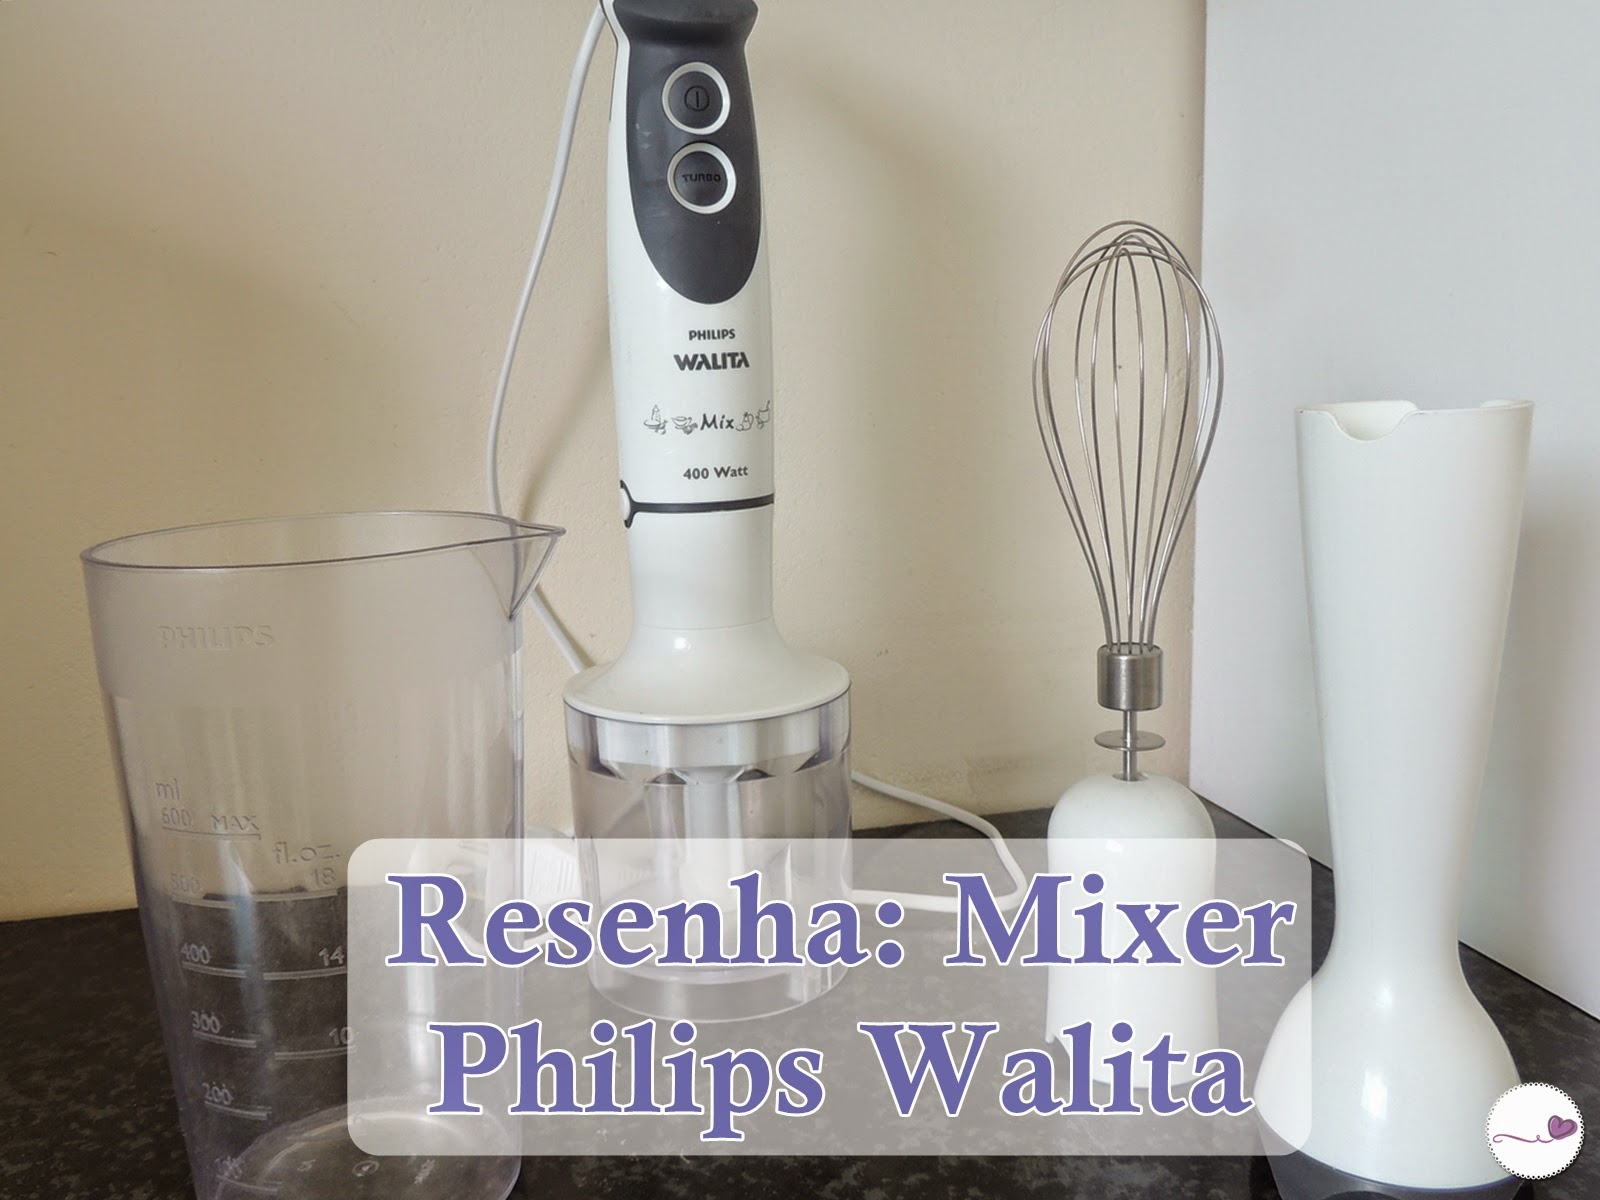 Resenha: Mixer Phillips Wallita